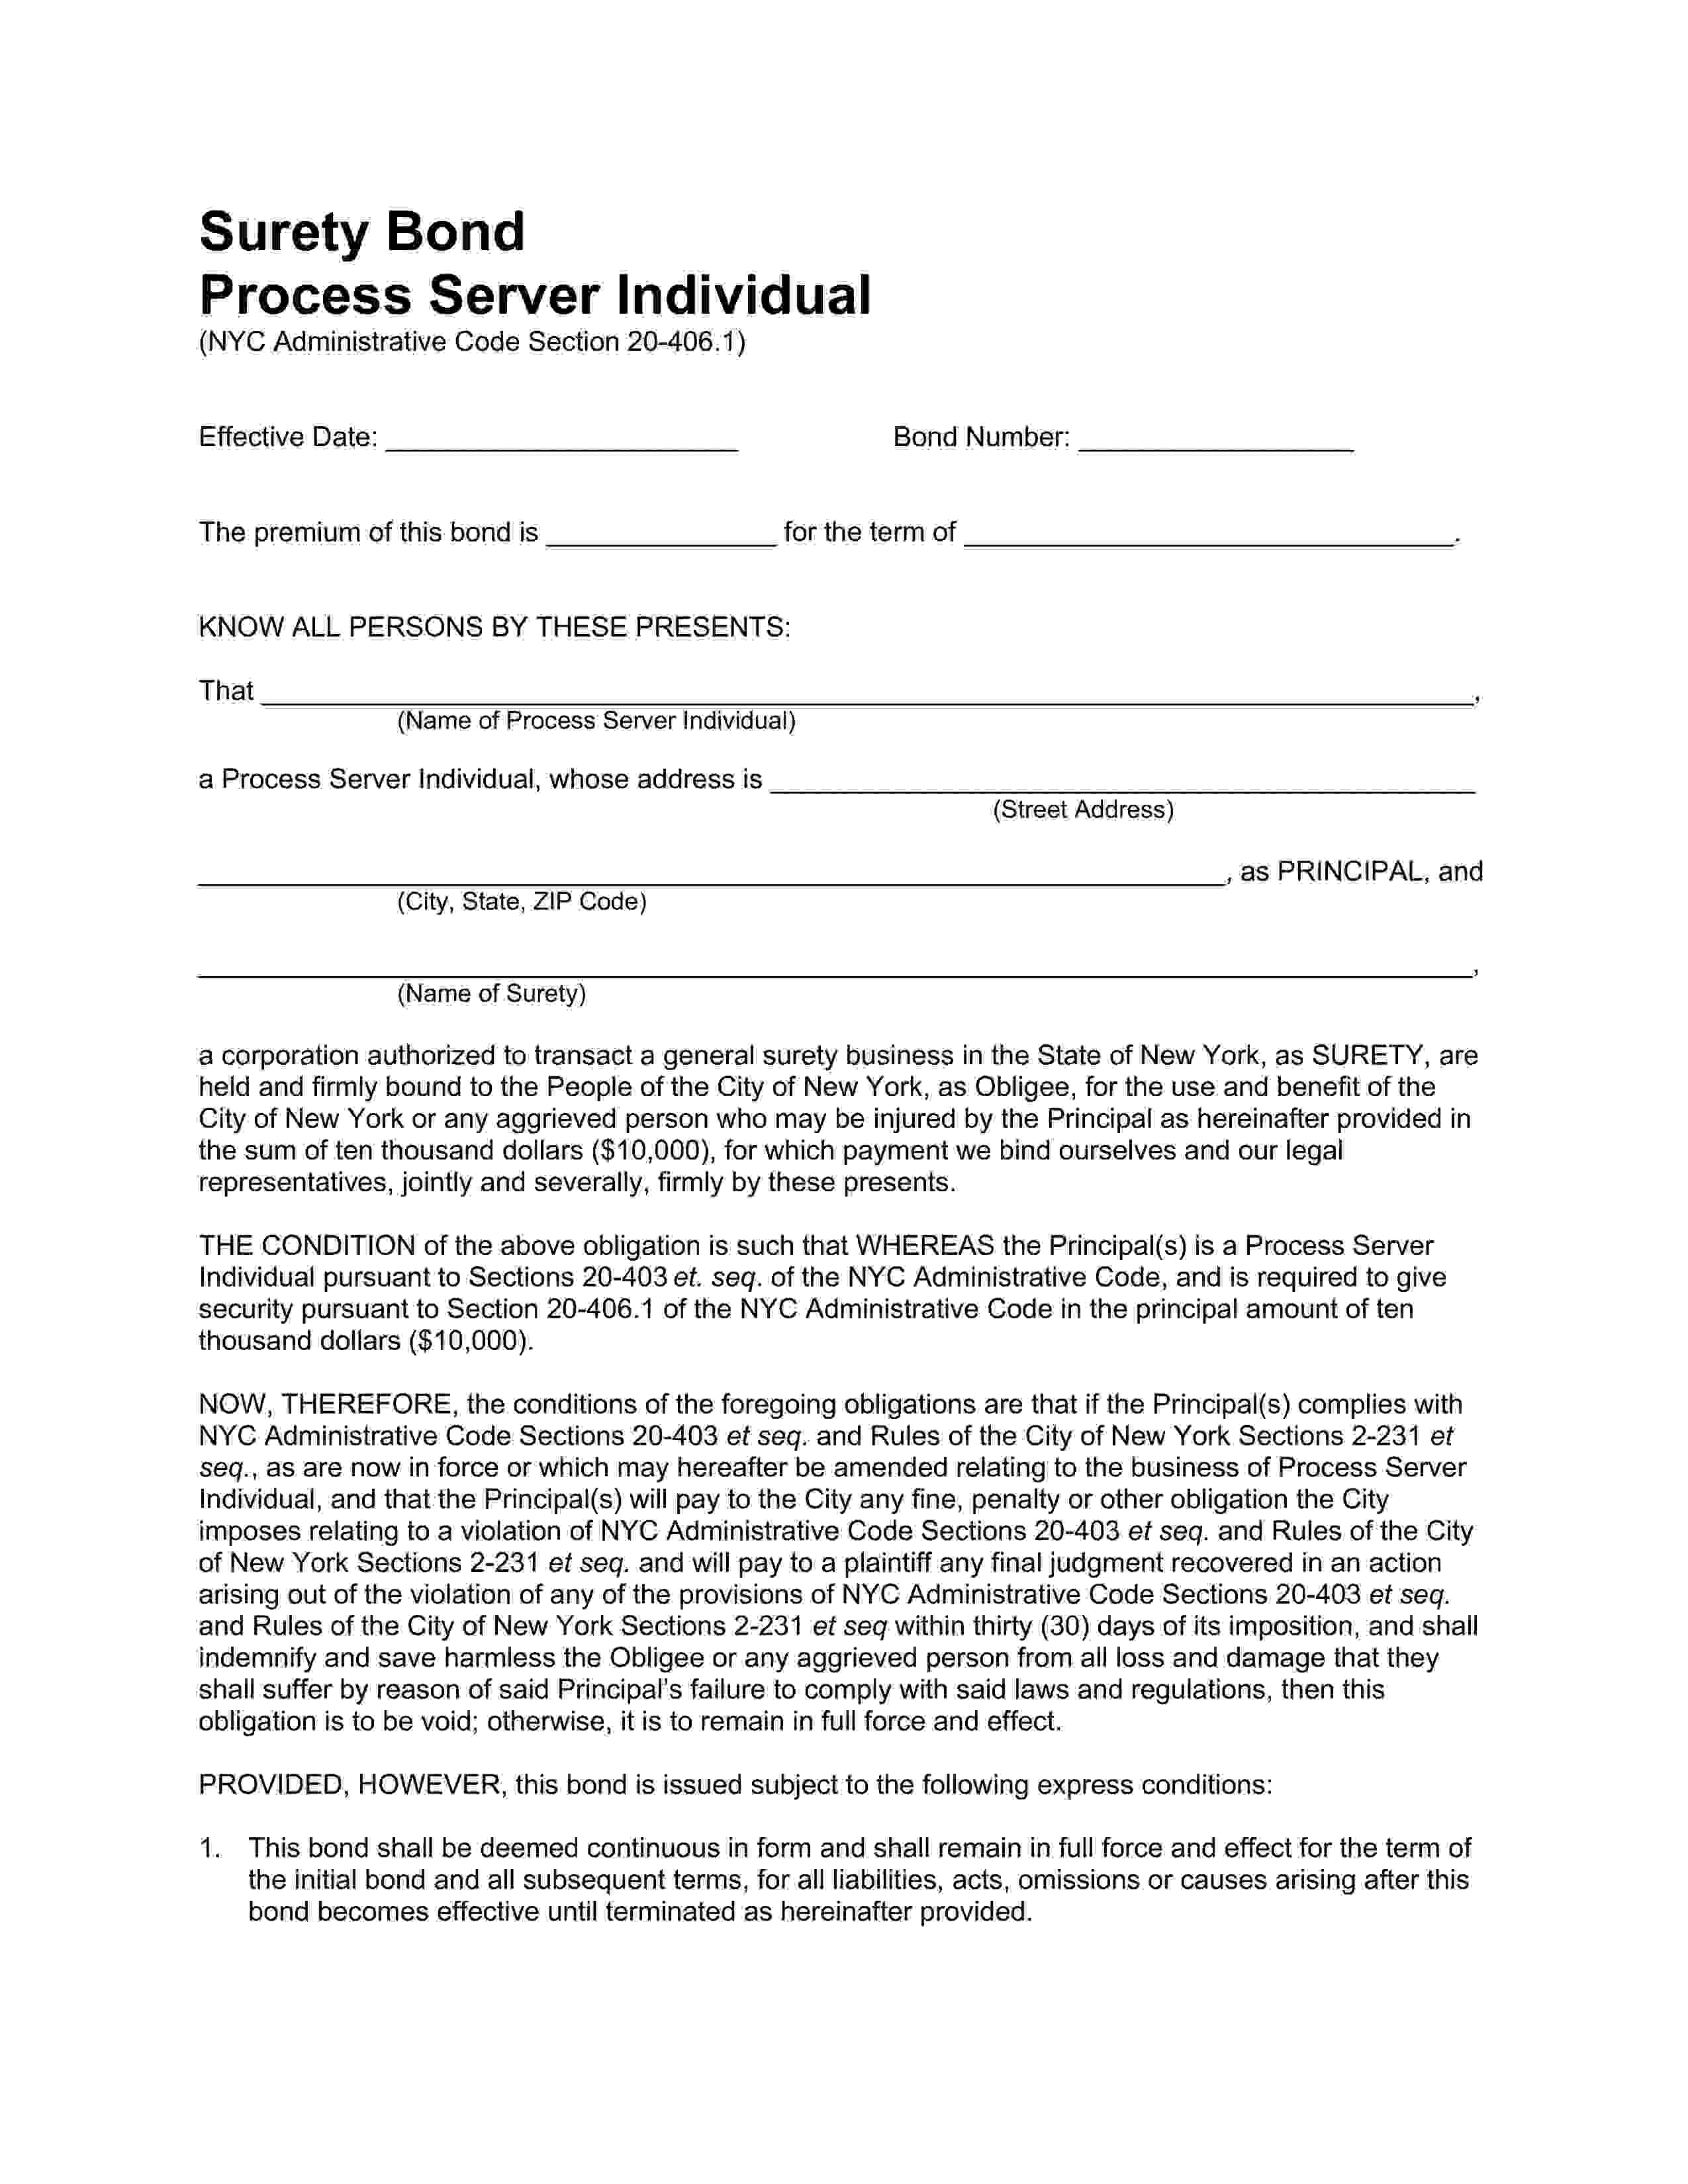 City of New York Process Server Individual sample image